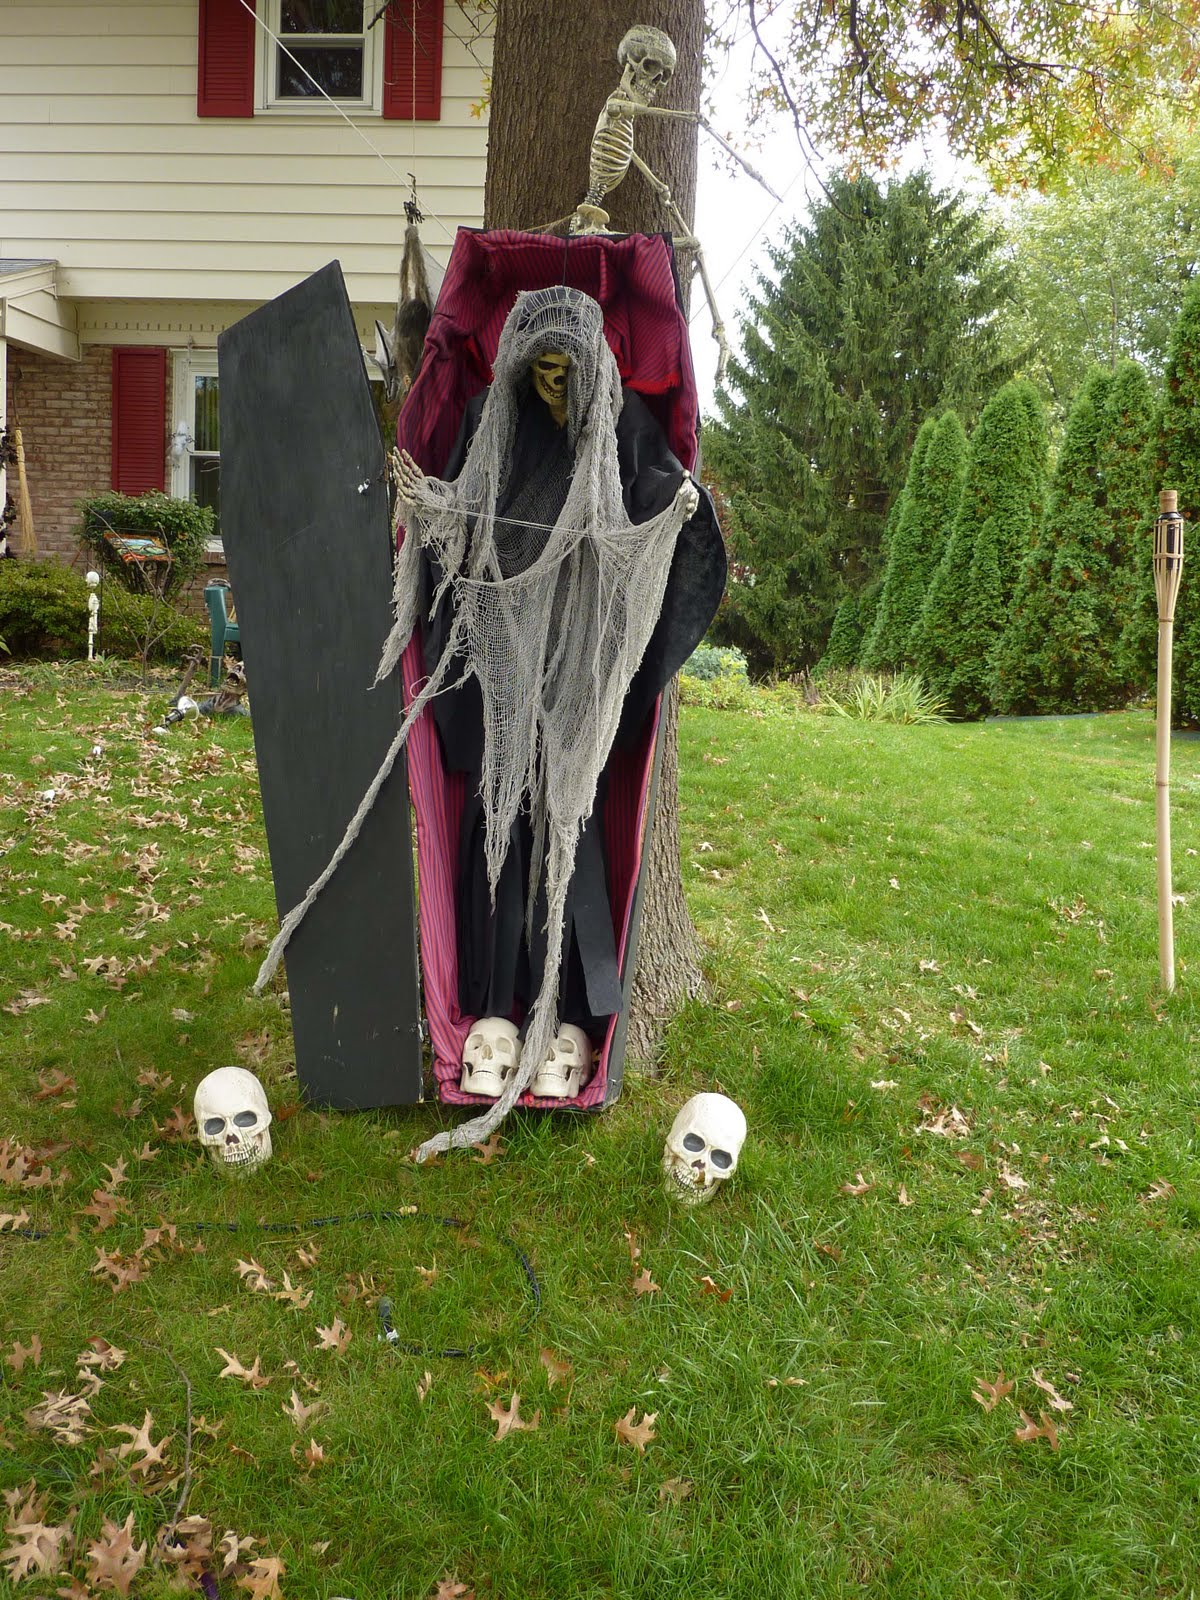 Best halloween decorated yards - Best Halloween Decorated Yards Photo 13